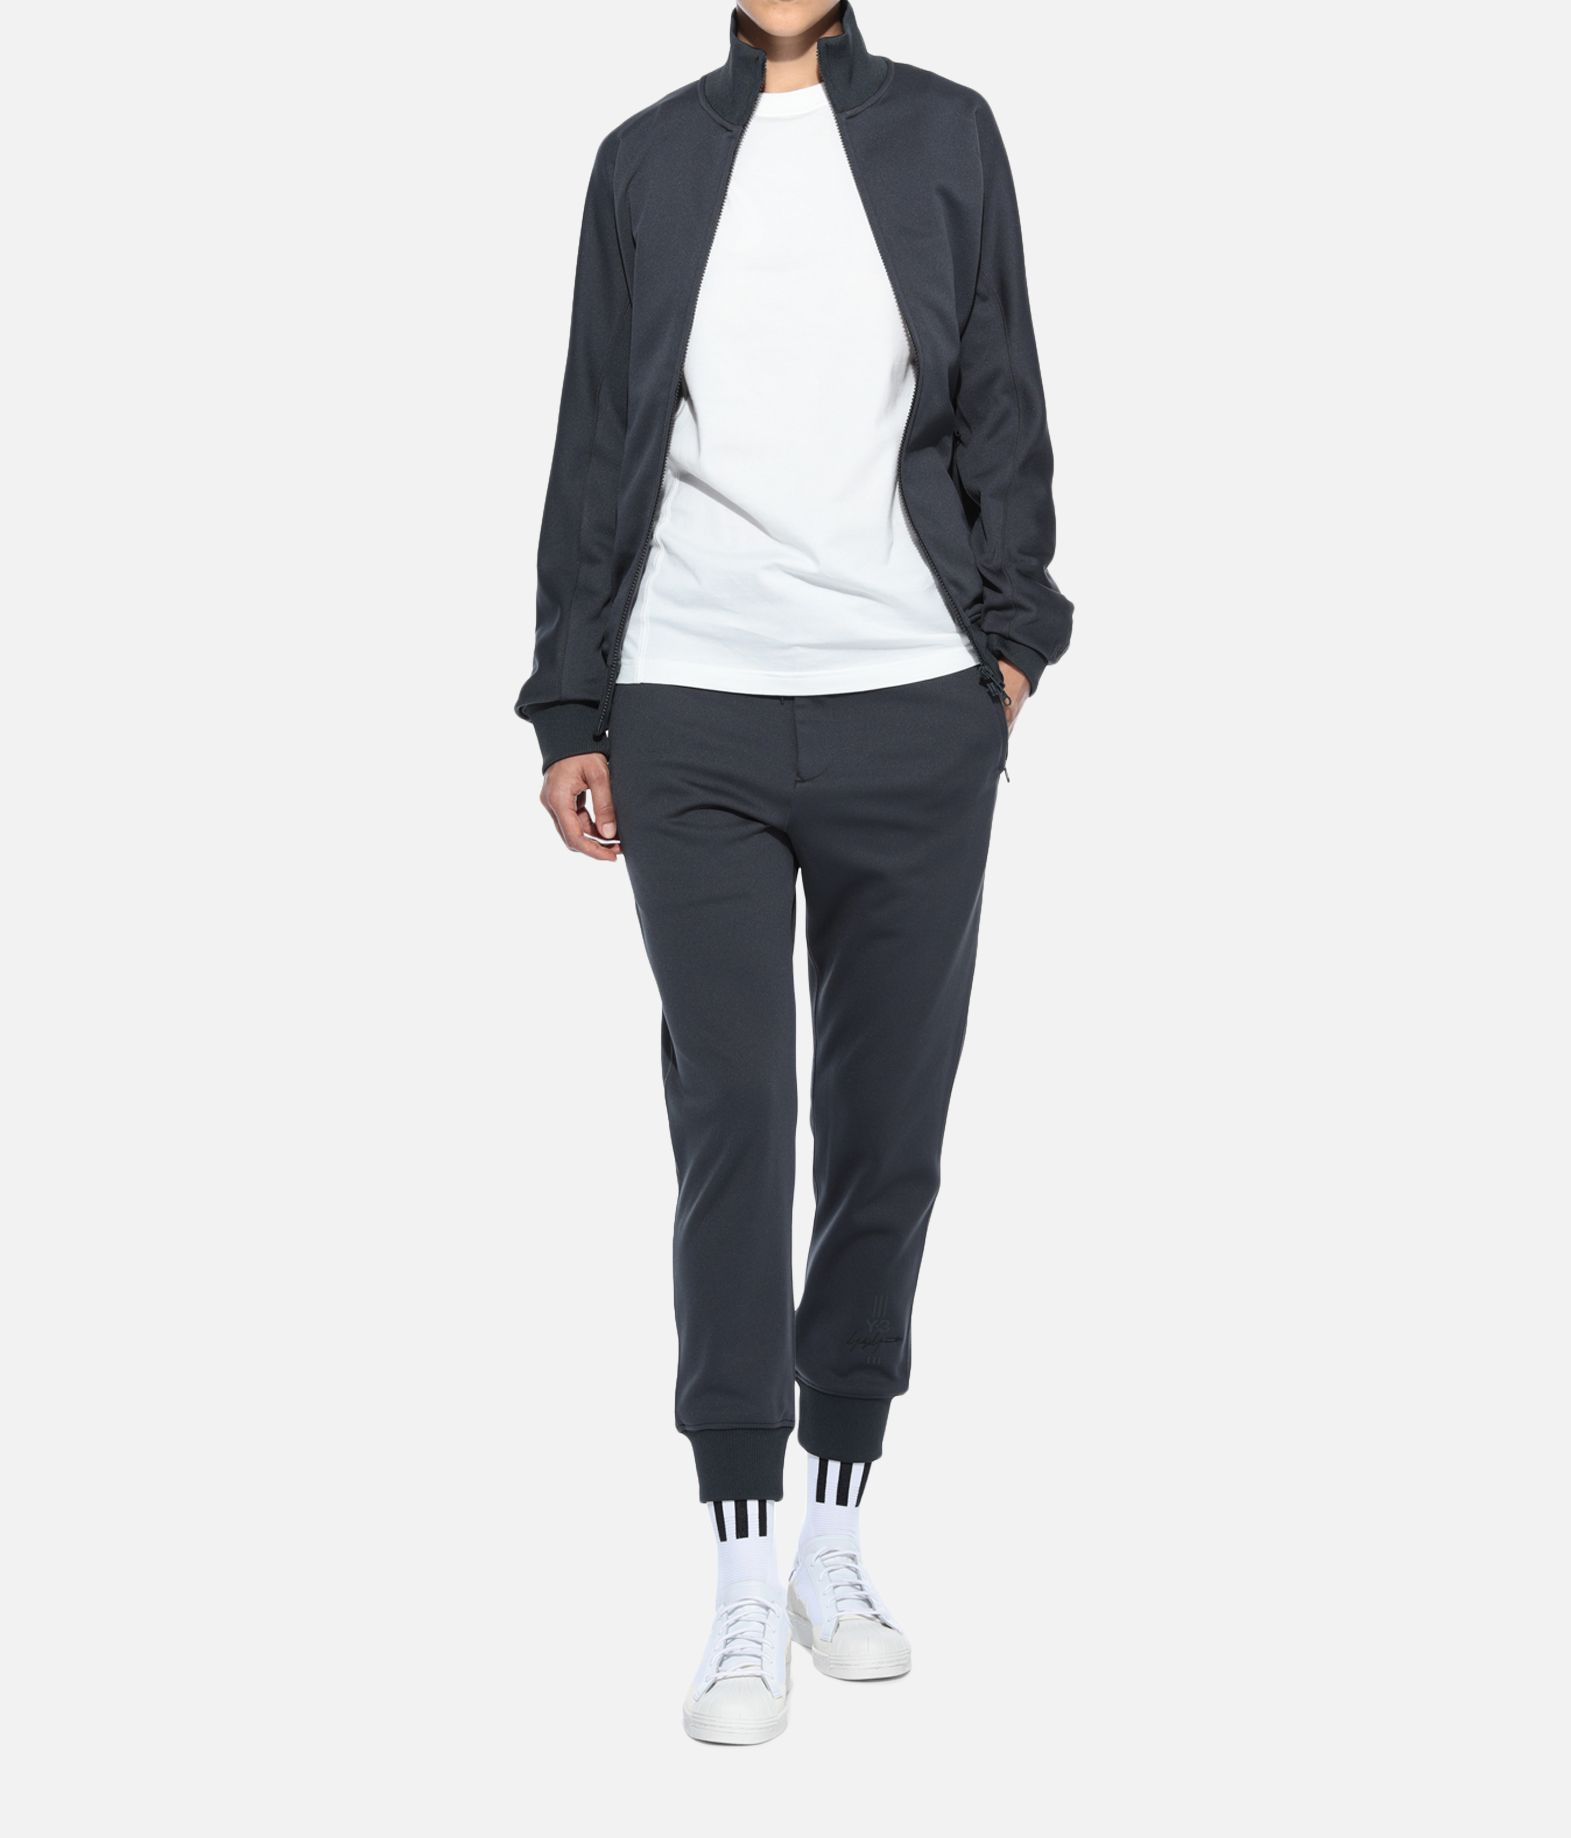 Y-3 Y-3 Classic Track Pants Sweatpants Woman a